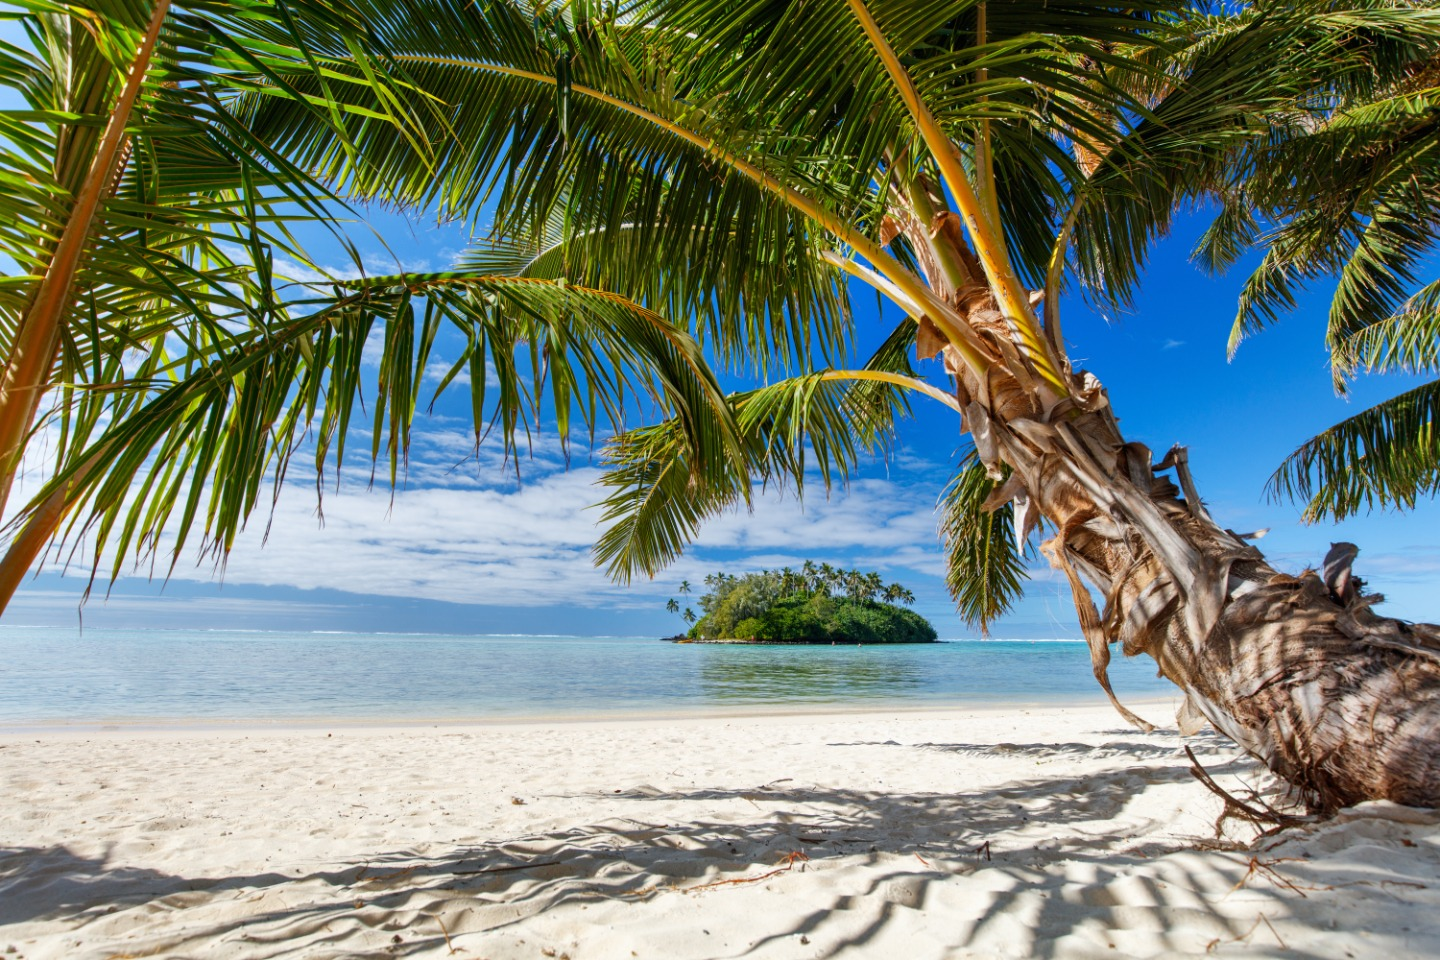 Beautiful tropical beach with palm trees, white sand,